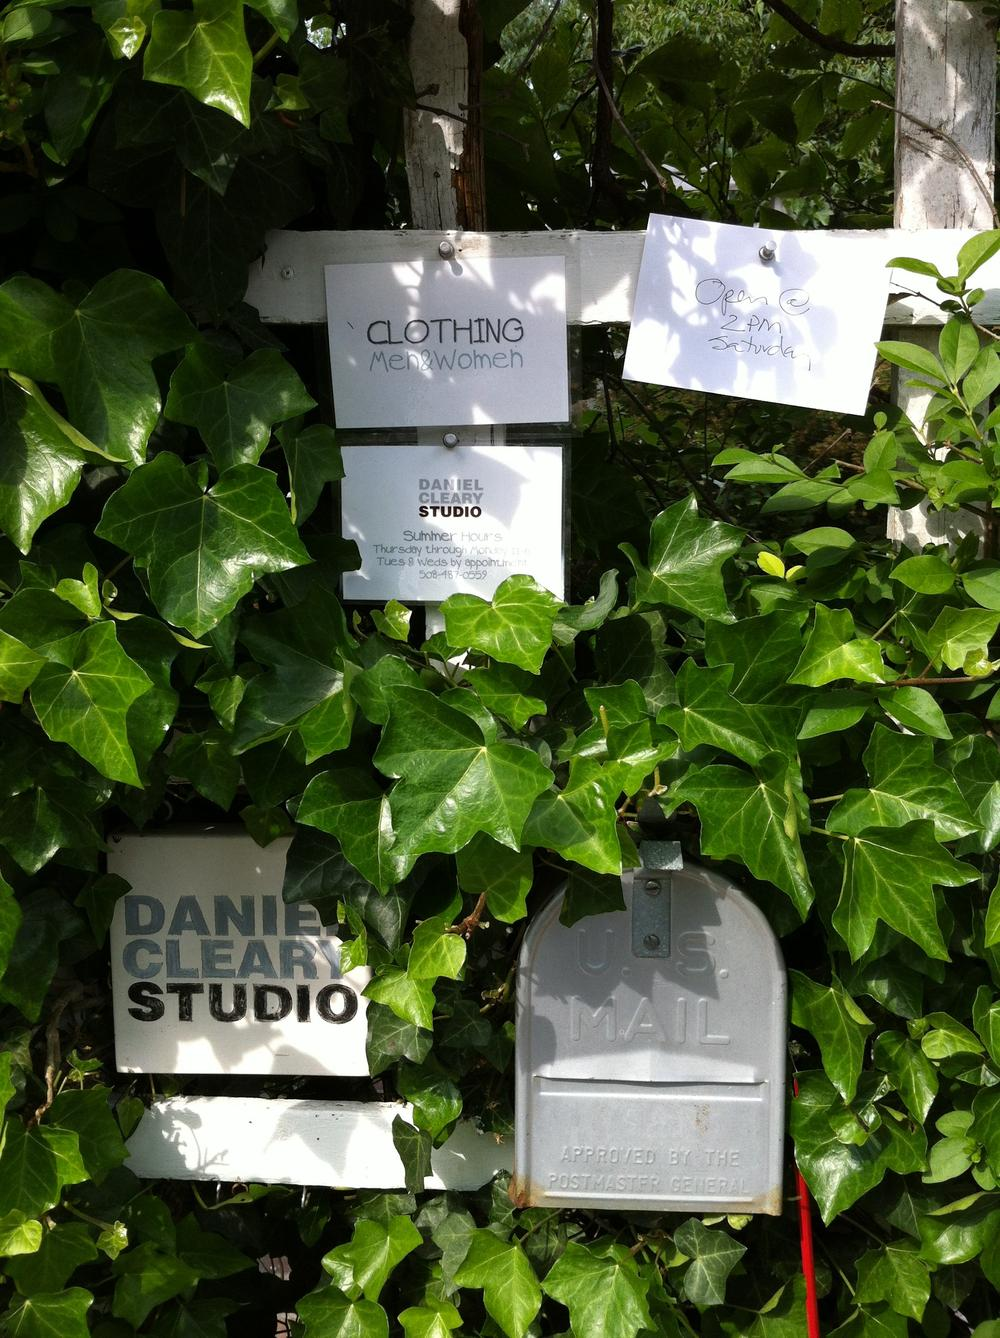 Buried in the ivy, all the information visitors to Daniel Cleary's cottage need to know. (Cheryl Katz)